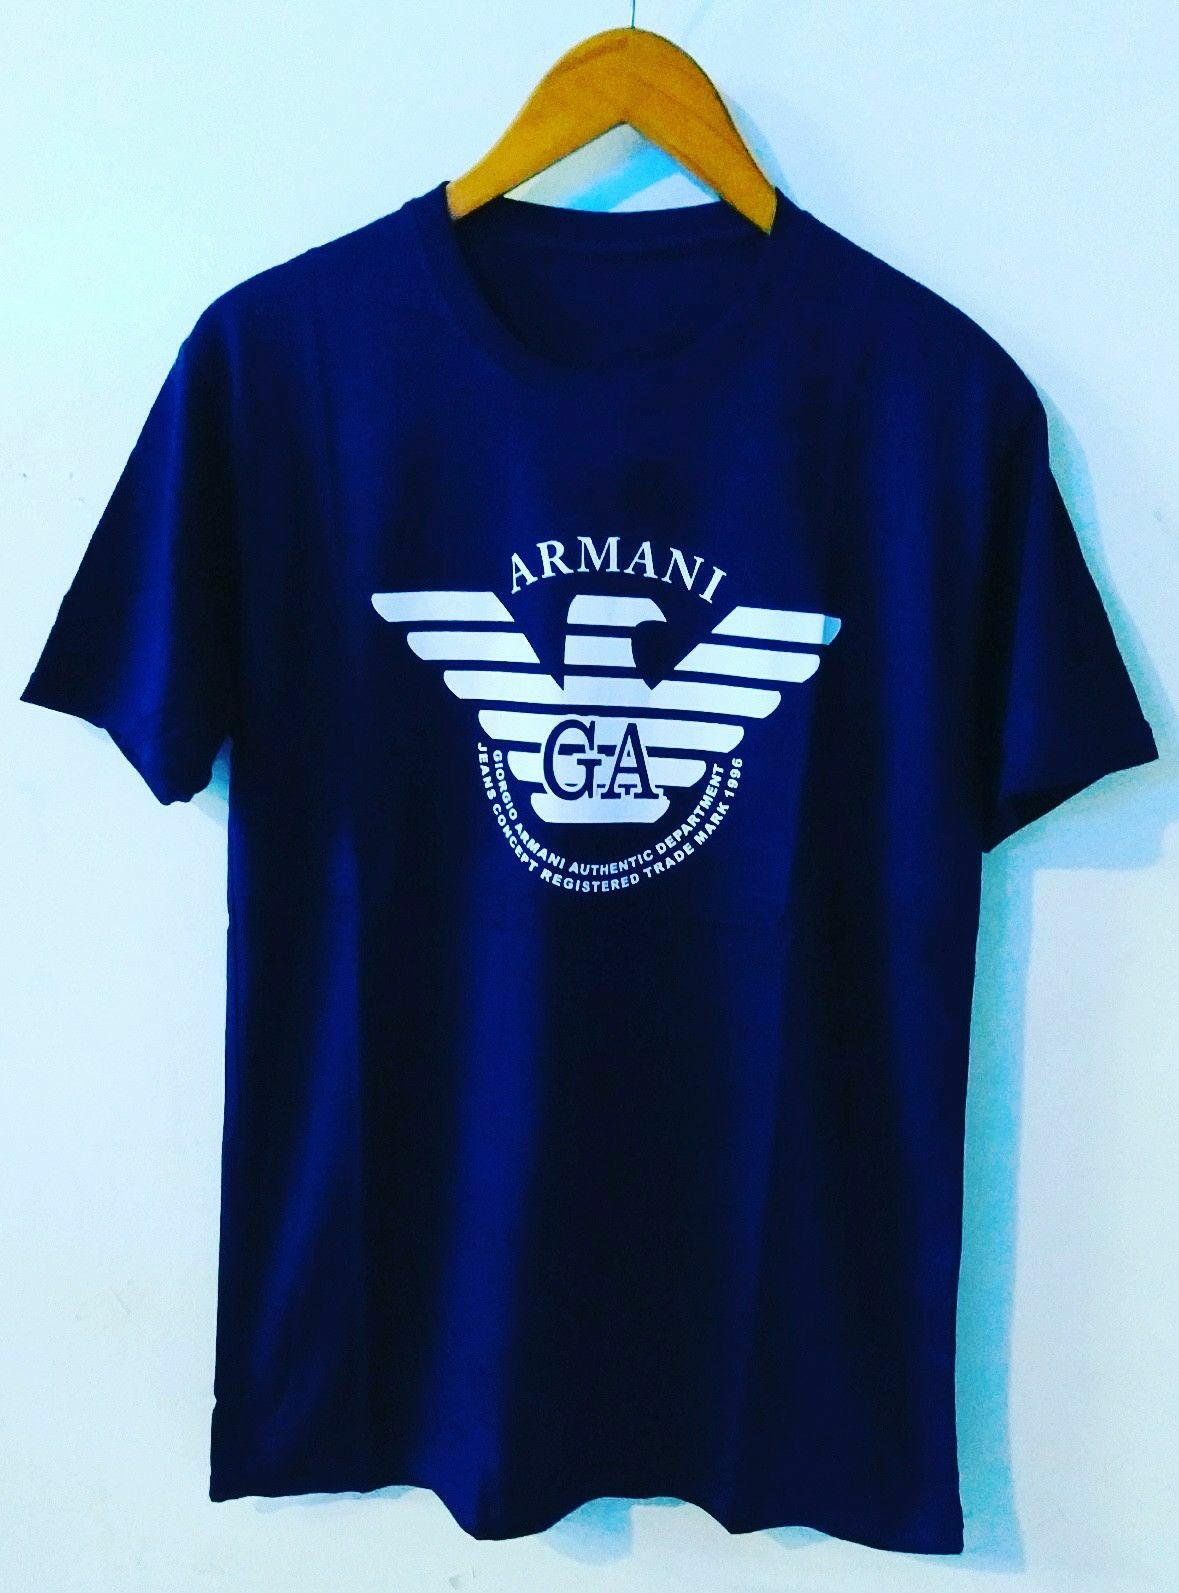 Amazon distro-kaos distro T-shirt fashion 100% soft cotton combed 30s kaos pria kaos fashion baju distro T-shirt gambar ARMANI katun marvel sablon plastisol atasan pria wanita katun simple keren cowok cewek pakaian distro